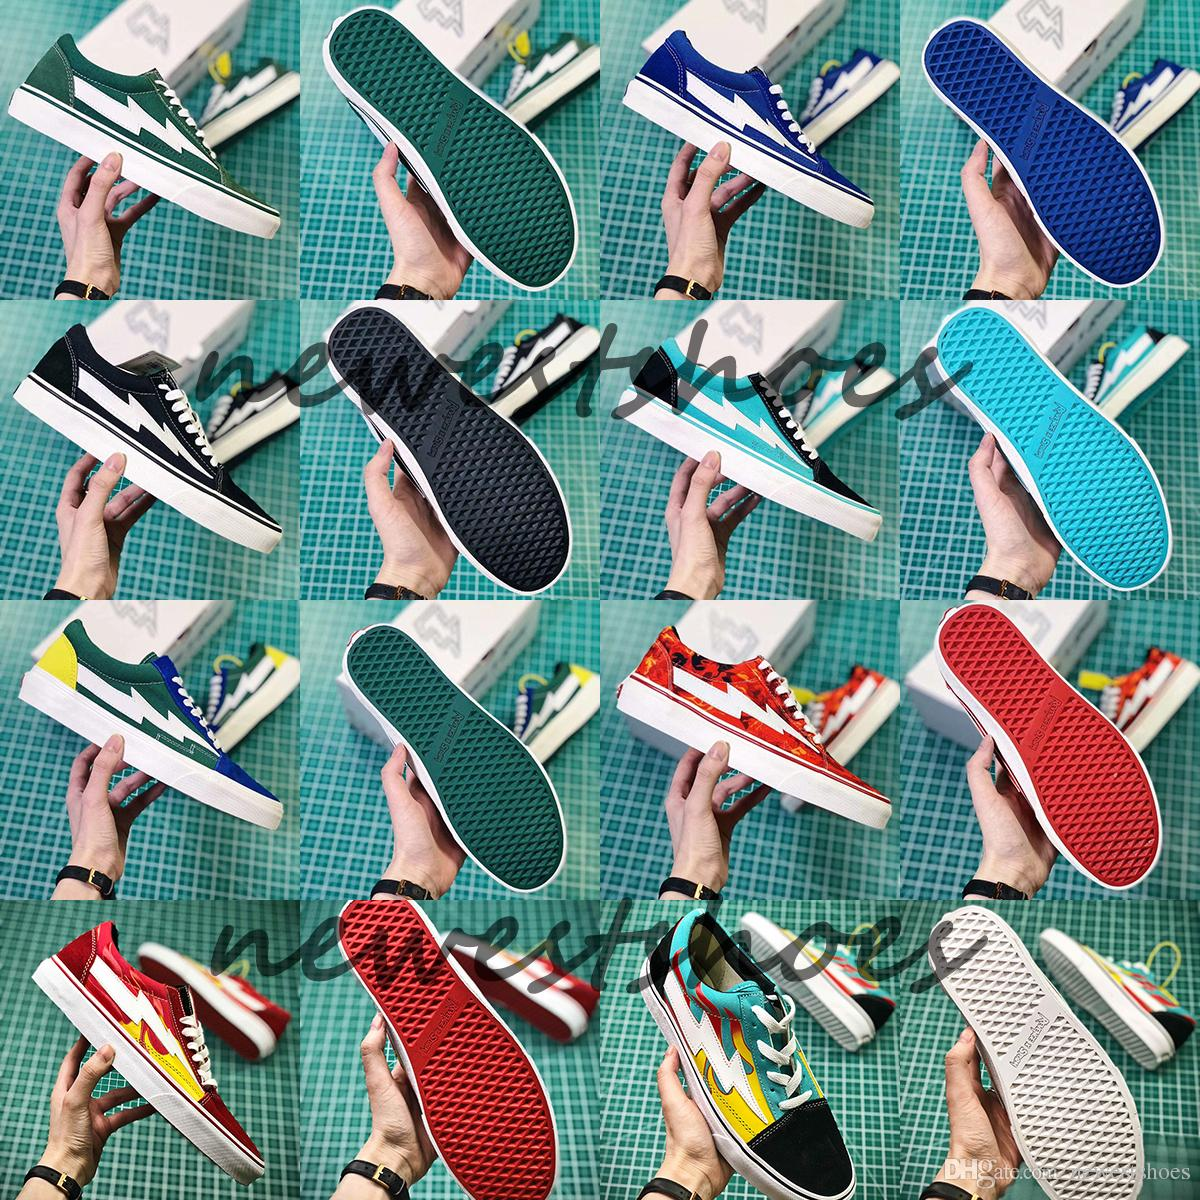 effa8b97dd69 2019 2018 Newest Revenge X Storm 3 Old Skool Green Blue Black Red Yellow  Mens Women Canvas Shoes Kendall Jenner Ian Connor Skate Sneakers From  Newestshoes